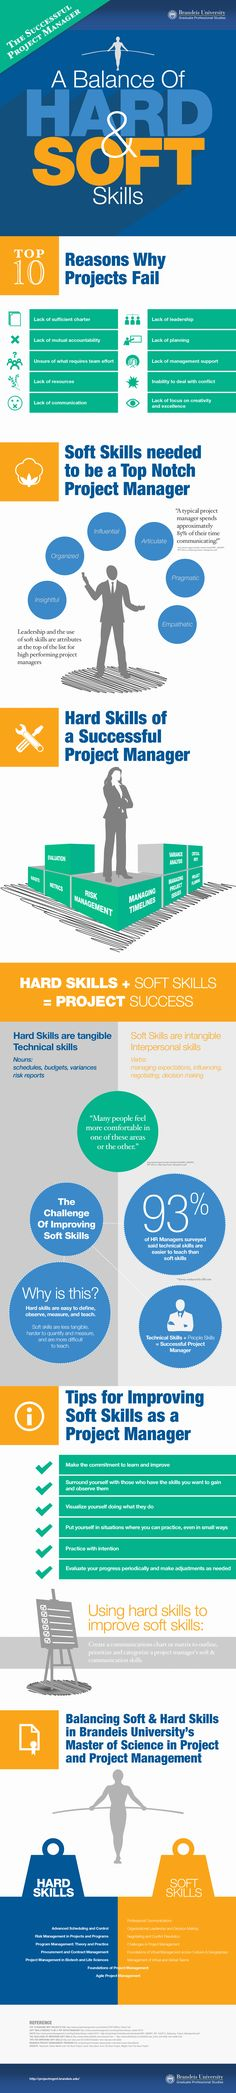 The successful Project Manager #infografia #infographic